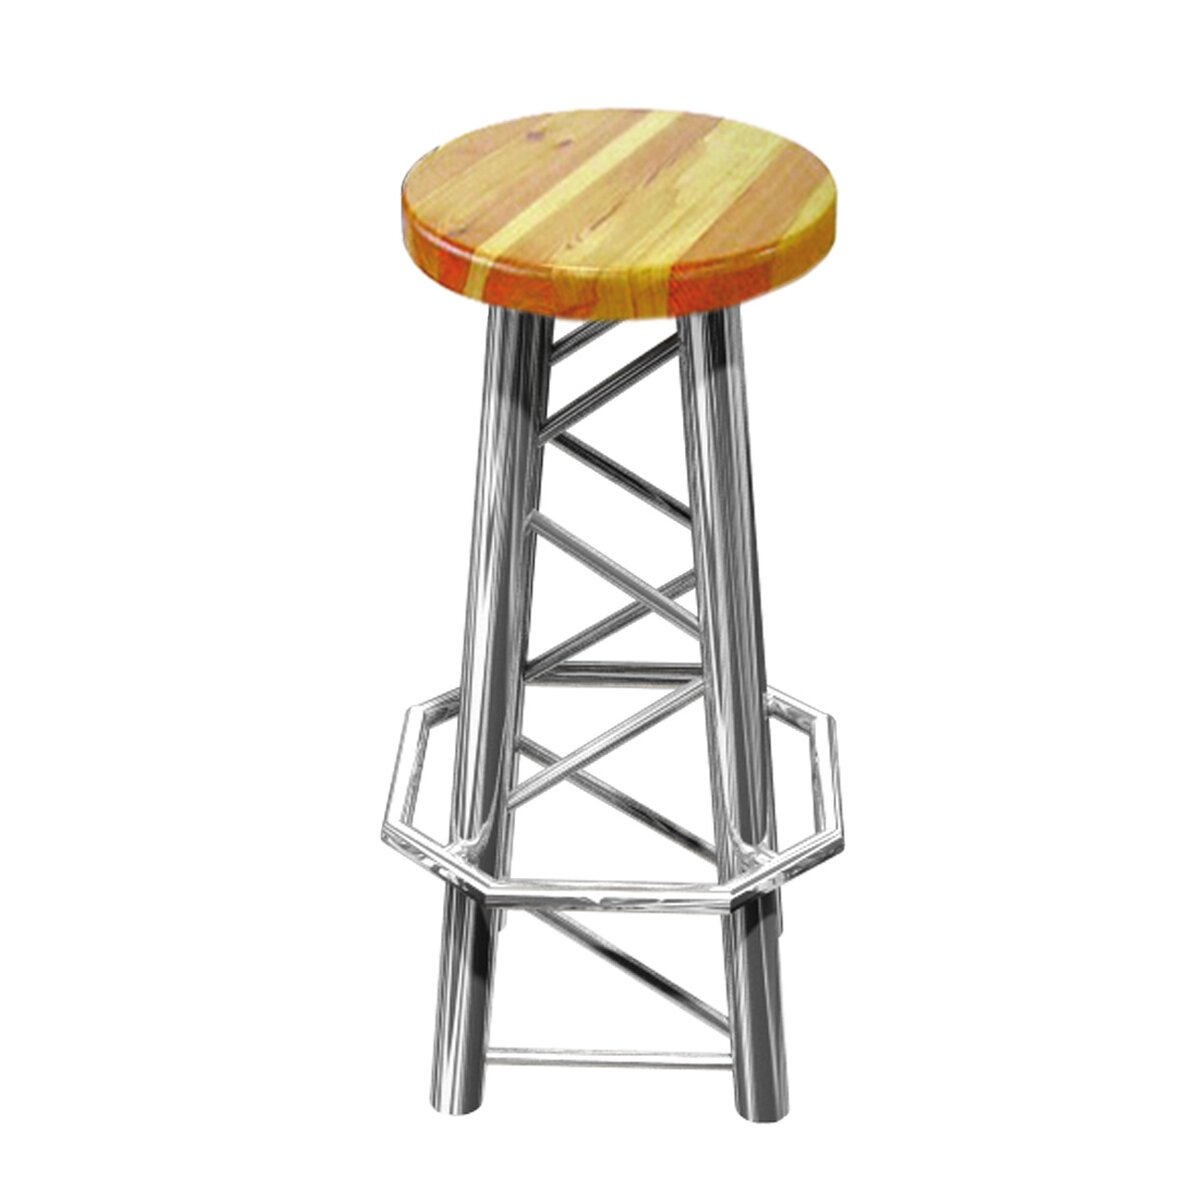 Duratruss DT STOOL1